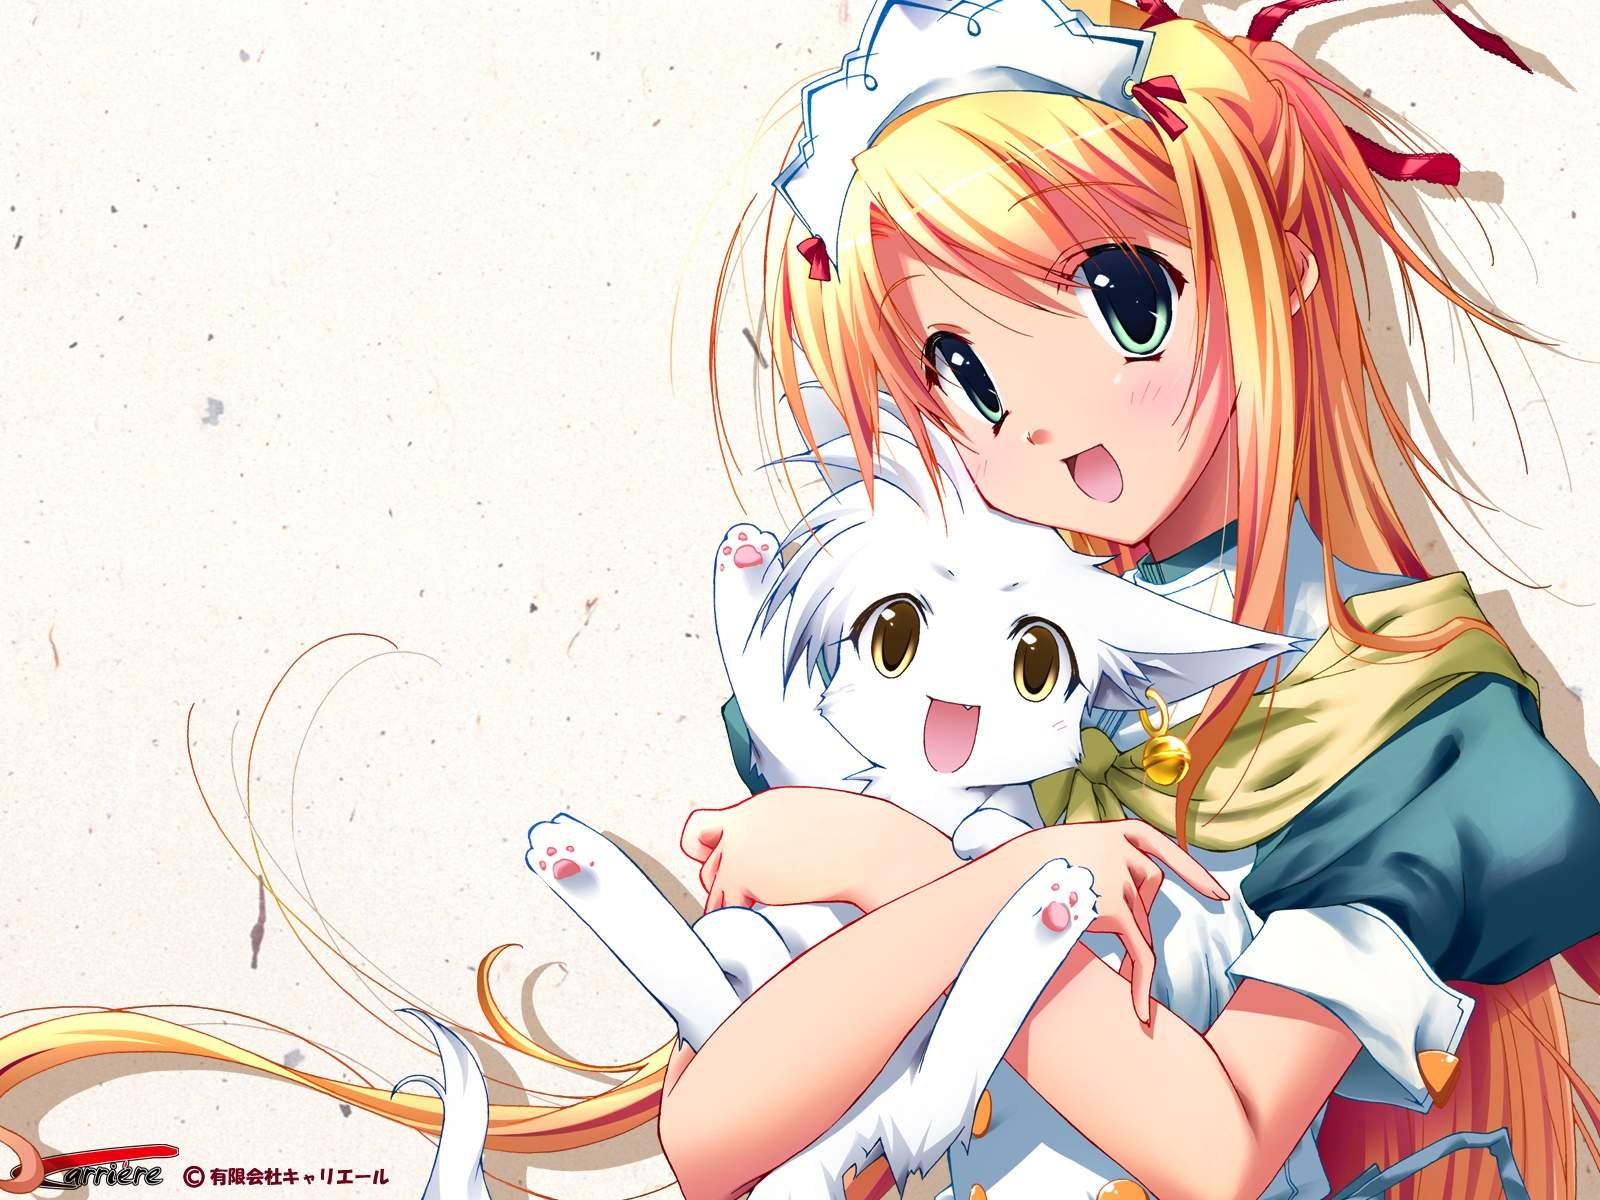 Anime Wallpaper Cute Hd